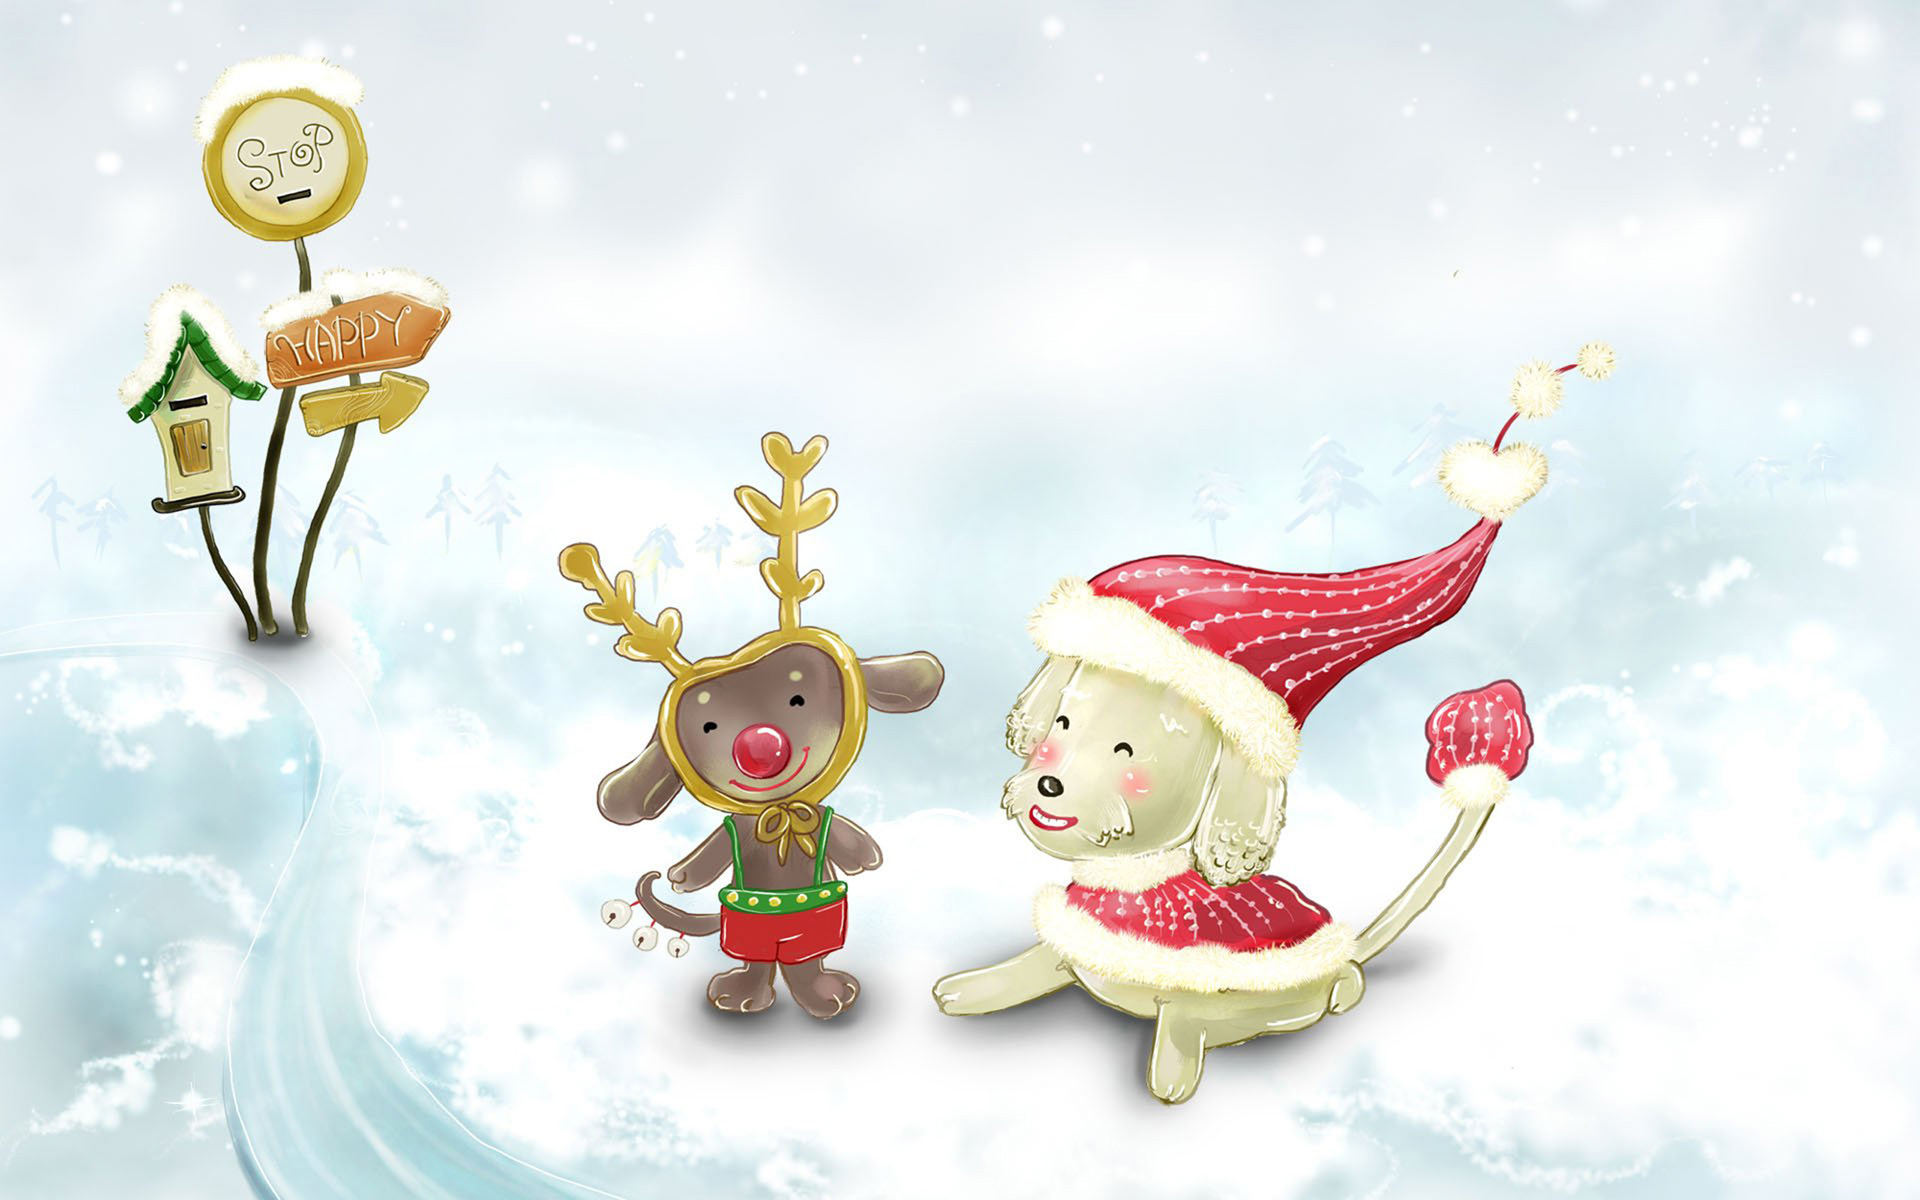 wallpaper cute christmas snow animals desktop 1920x1200 1920x1200